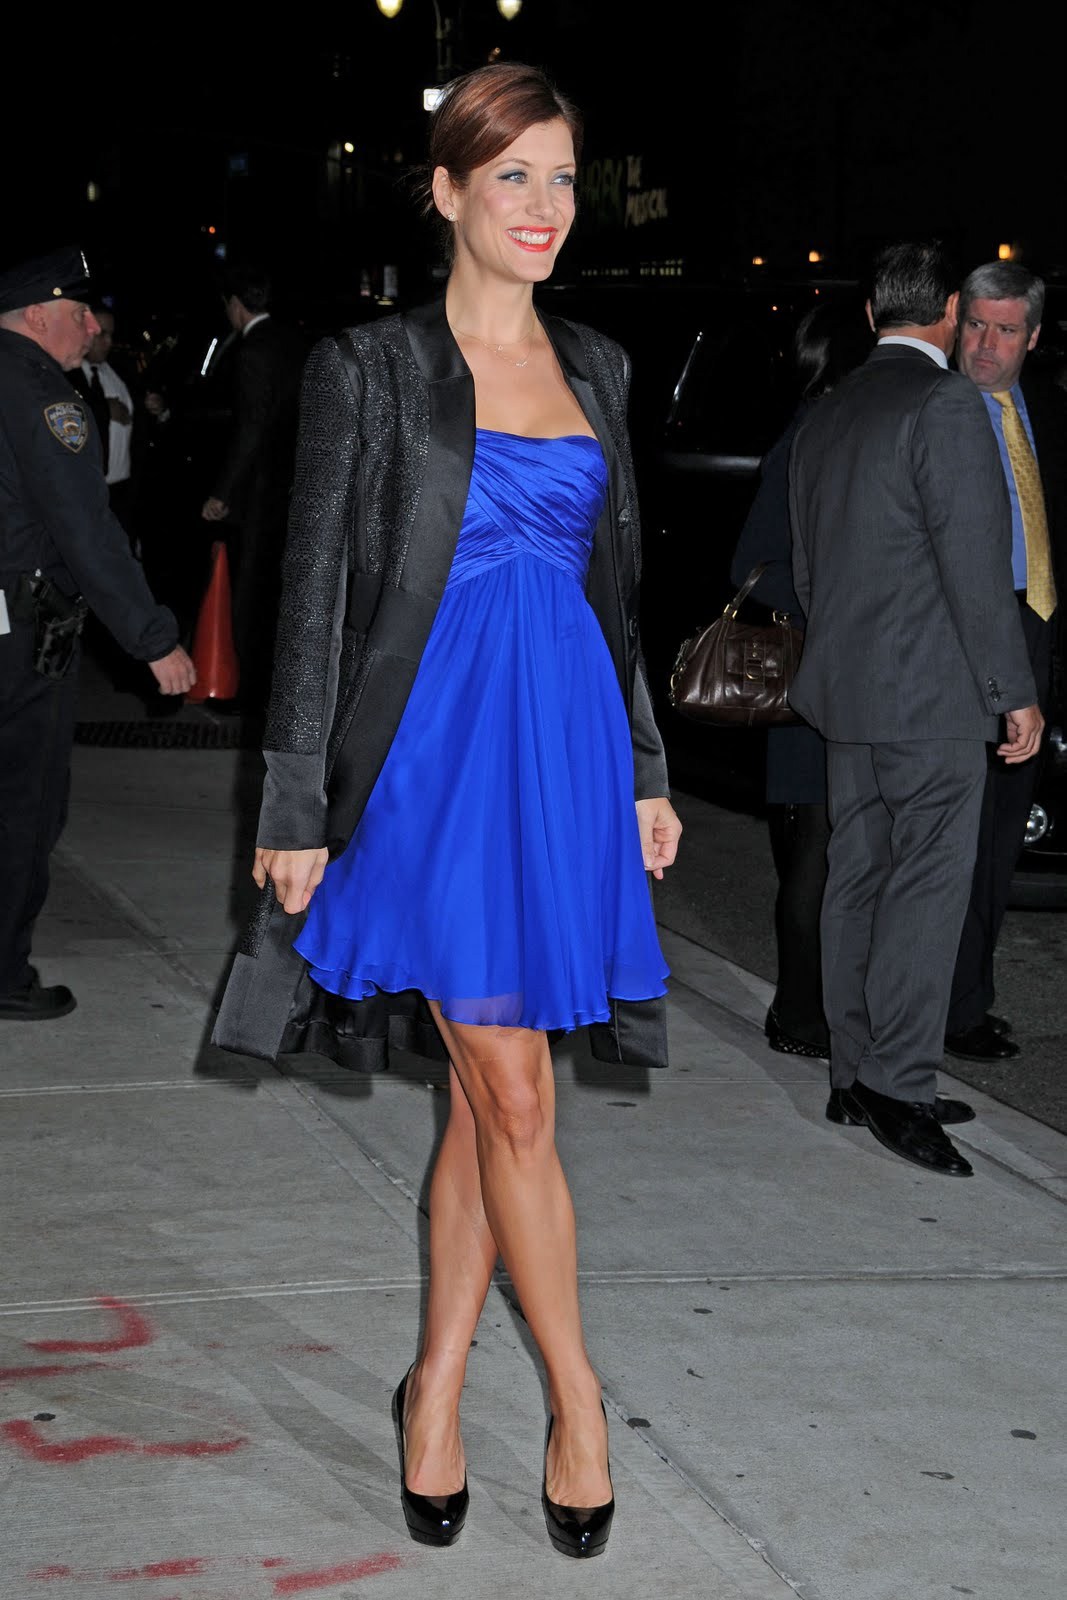 http://1.bp.blogspot.com/-ABX_sG8nH9U/TYvBGz8wG7I/AAAAAAAAG8E/Mw1Z3EjbPEY/s1600/Kate_Walsh_at_Late_Show_with_David_Letterman_in_New_York_City_-_Nov._11_2009_315_122_491lo.jpg